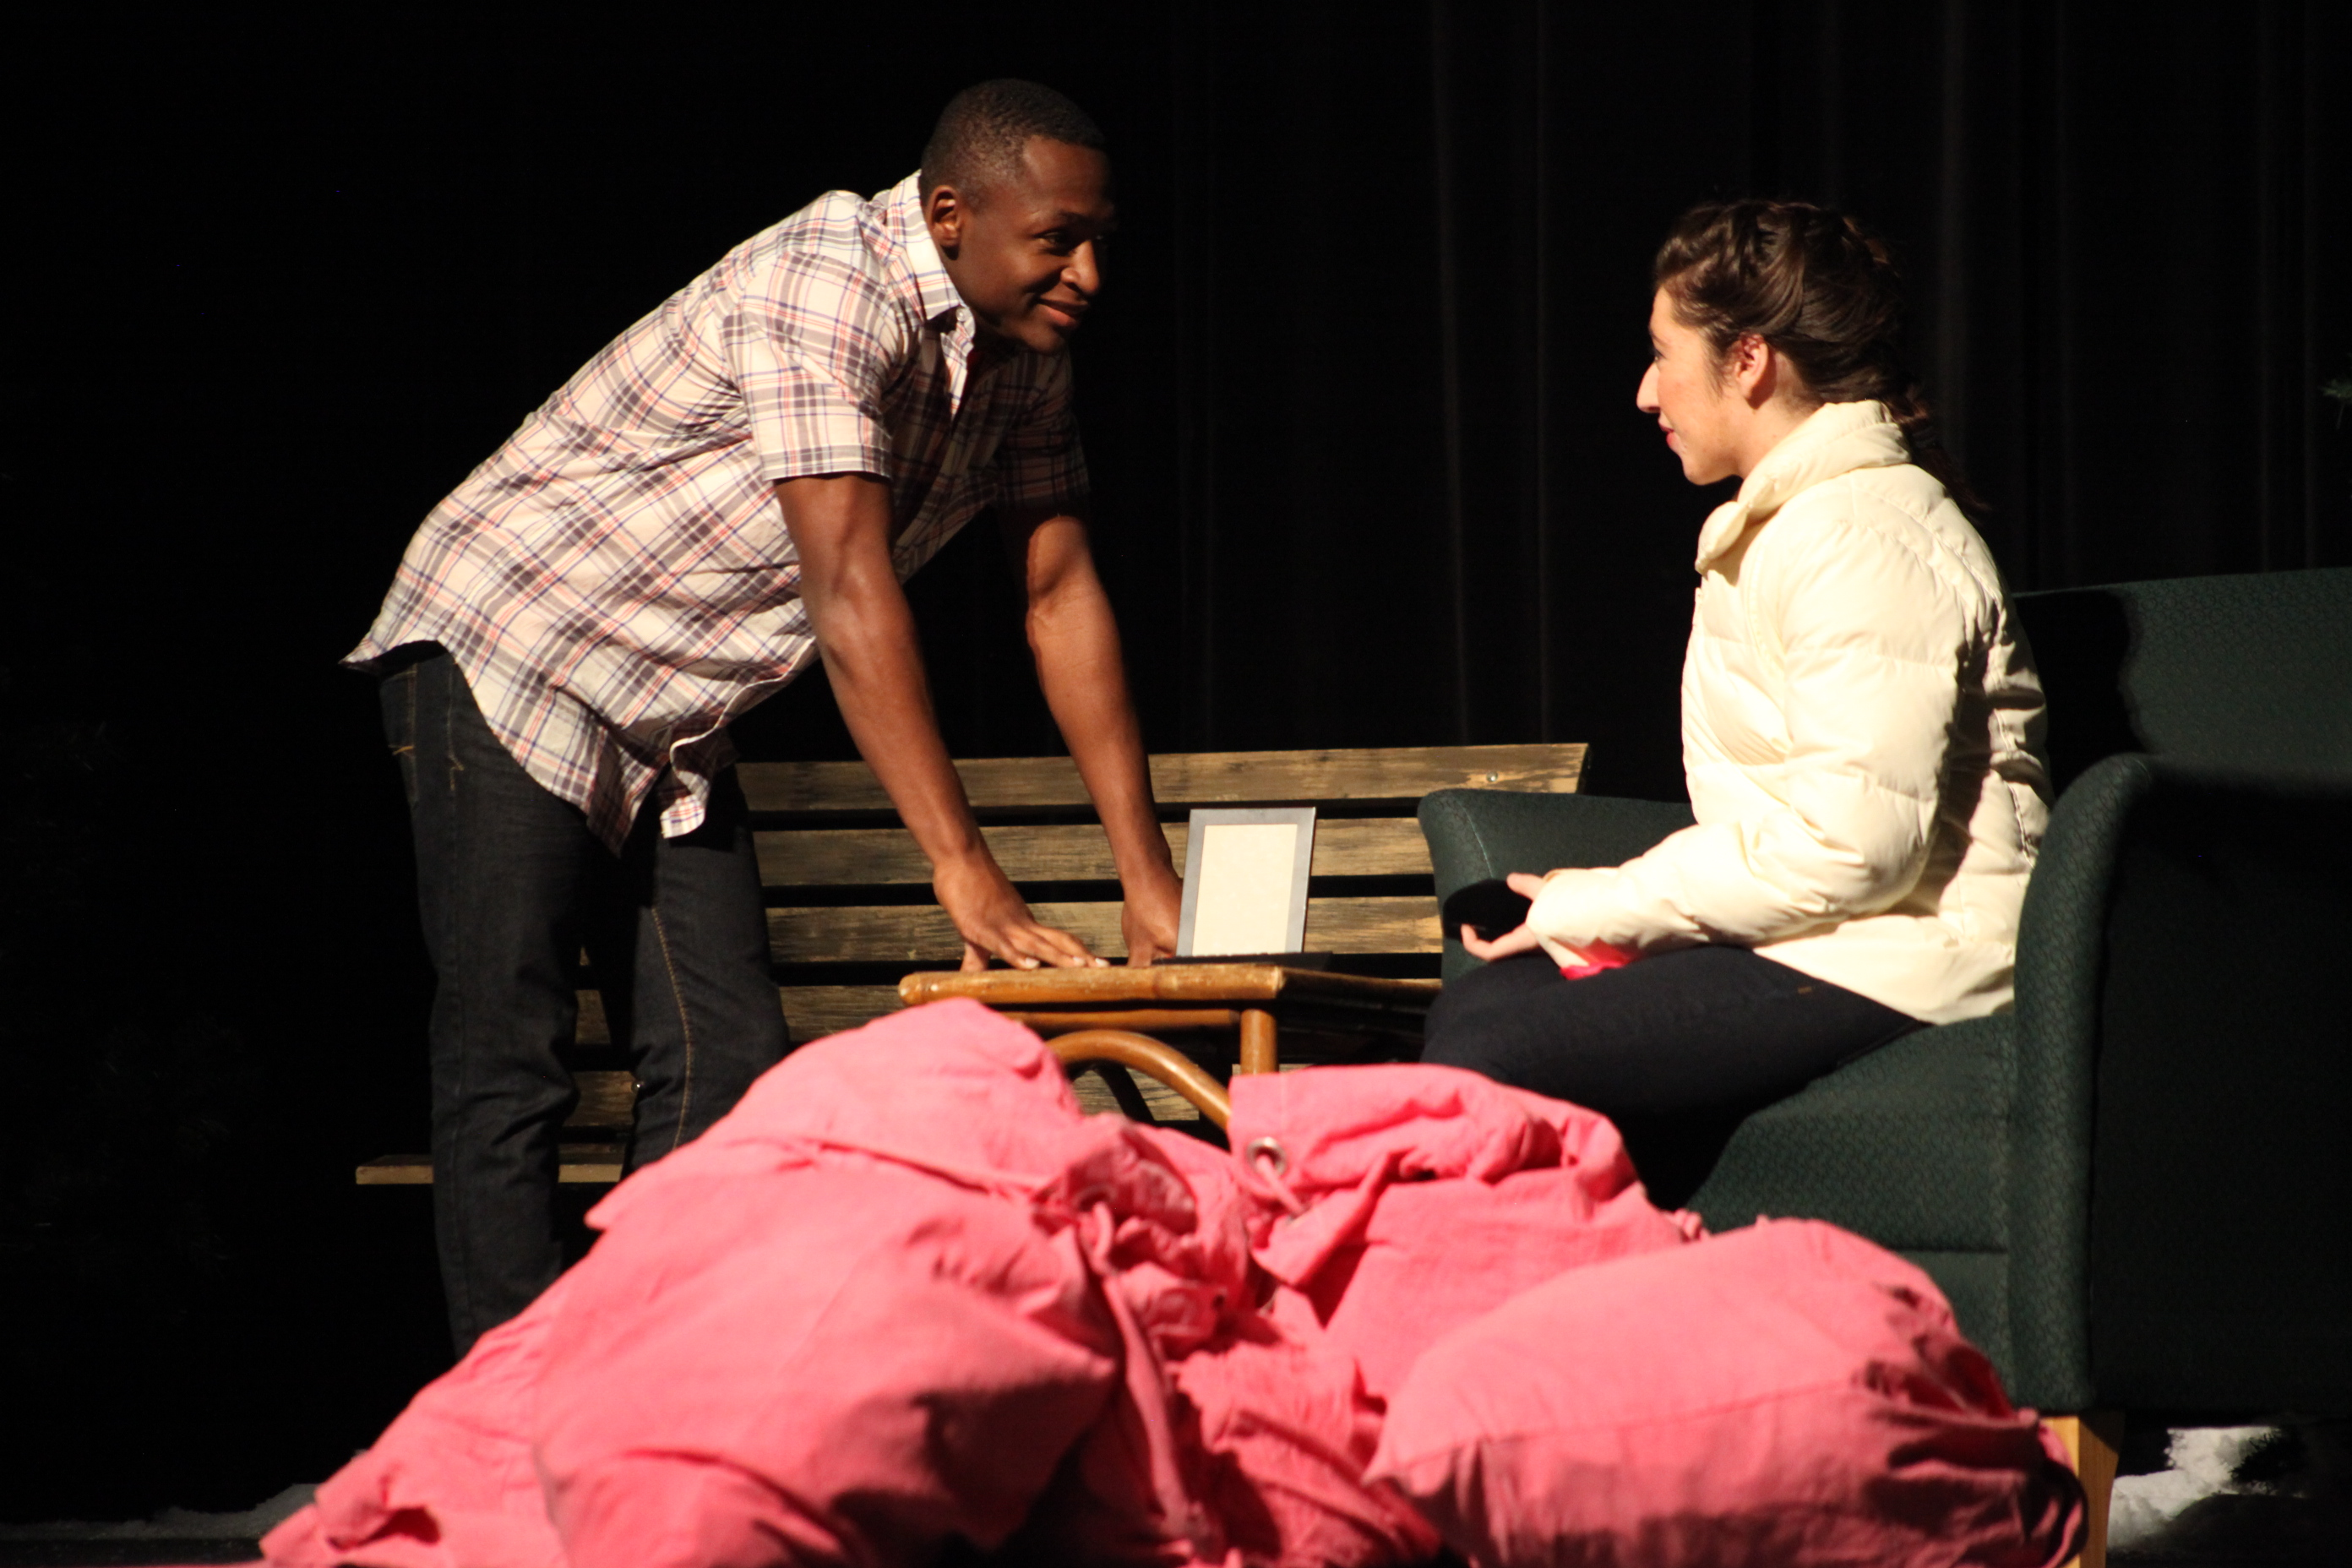 Students rehearse Almost Maine at Nease High School. The drama is on stage Feb. 5-8 in the school's auditorium,10550 Ray Road, from U.S. 1 North. Photos by Renee Unsworth